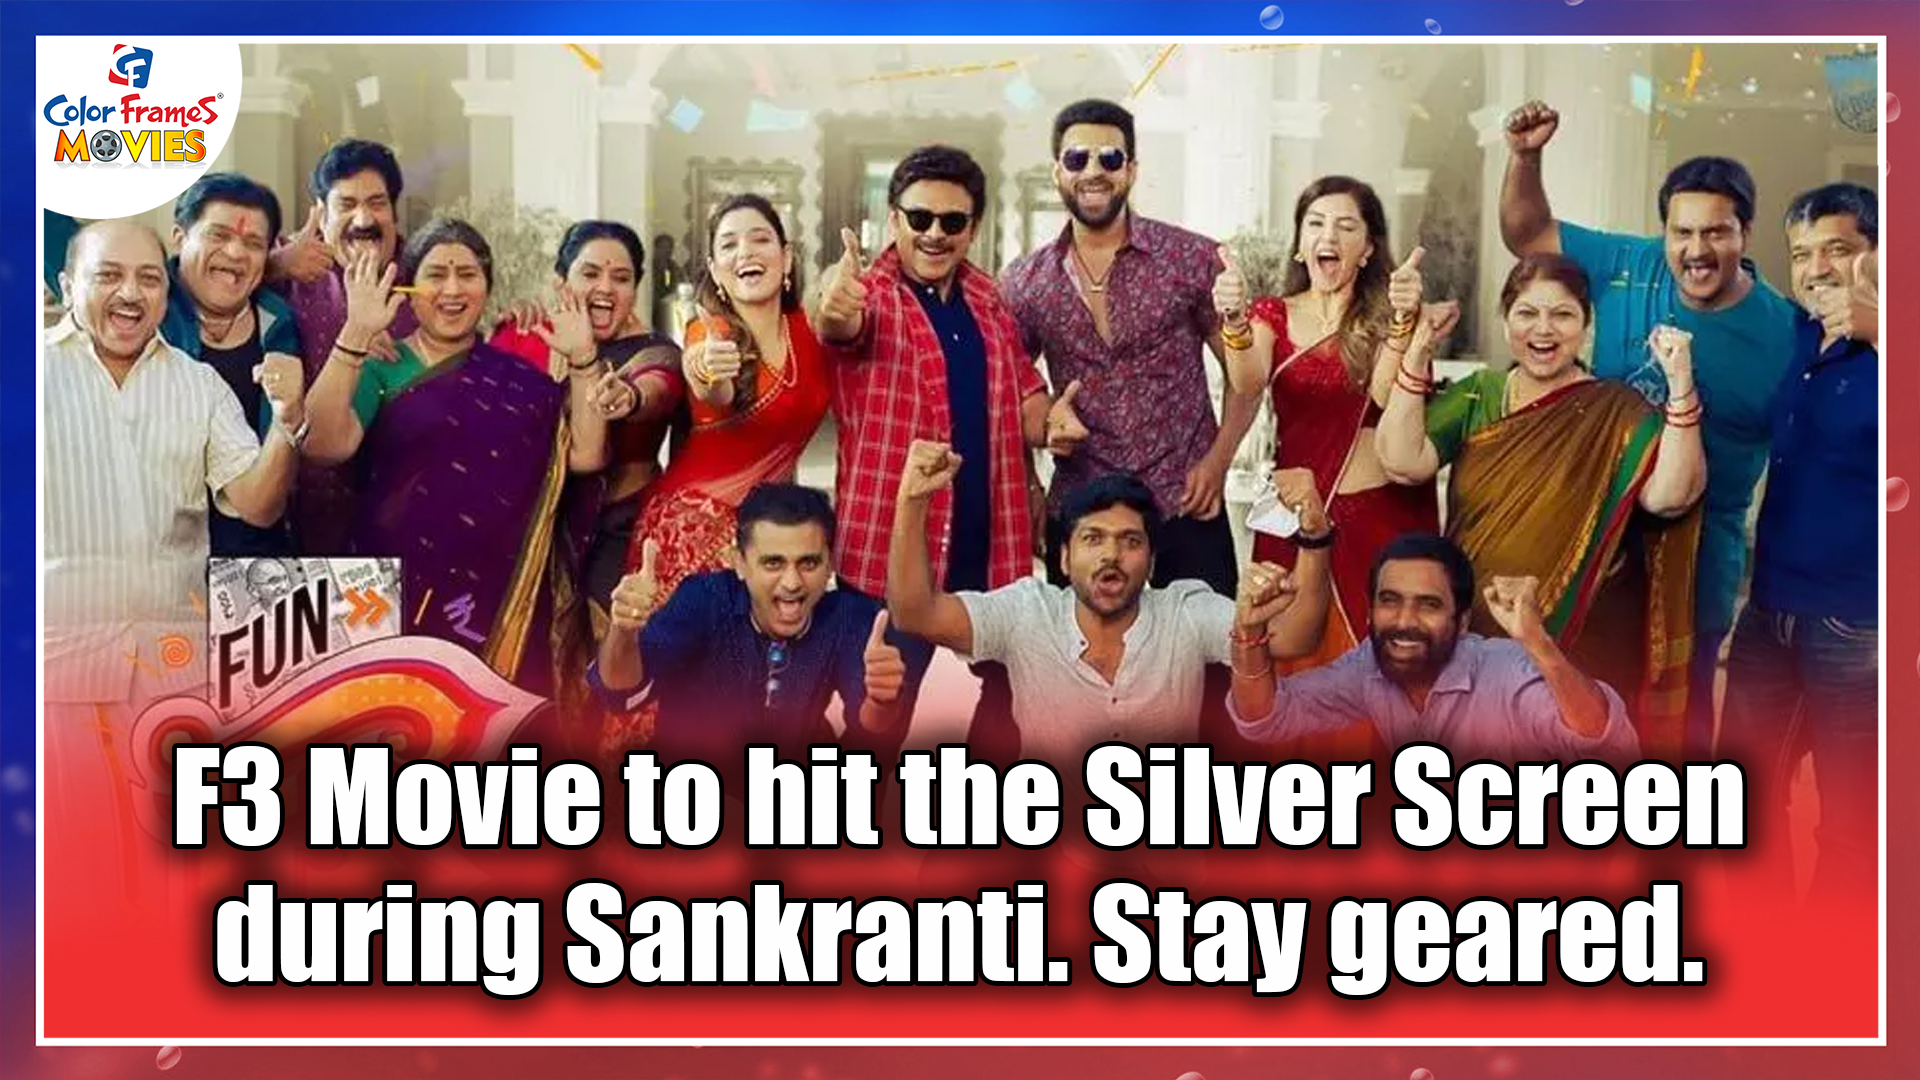 F3 Movie to hit the Silver Screen during Sankranti. Stay geared.